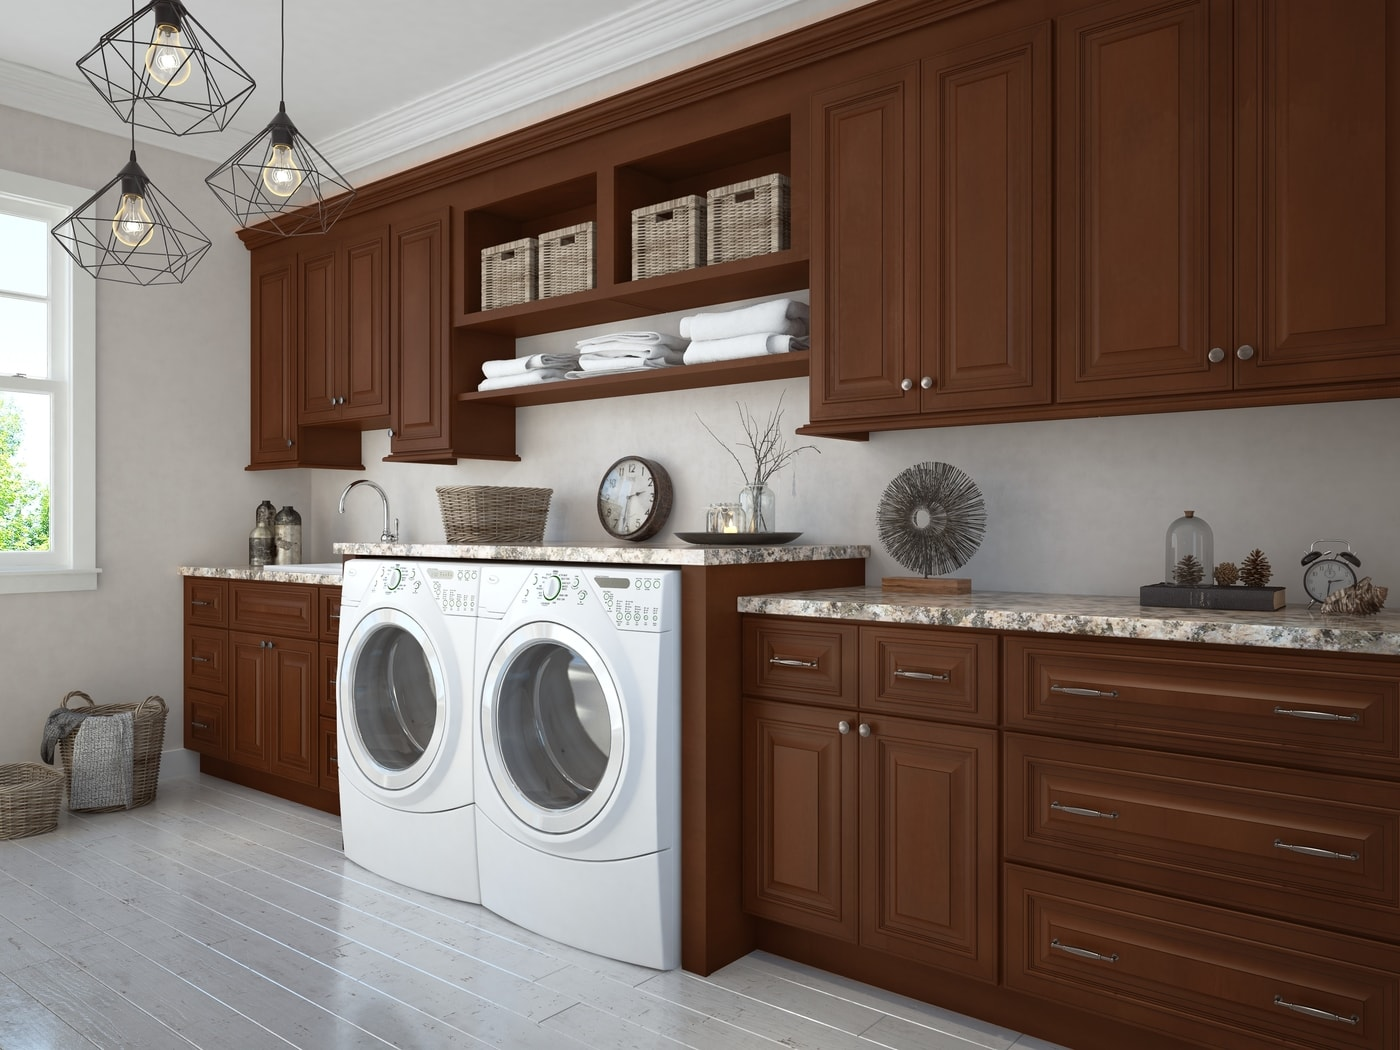 signature kitchen warehouse sale under cabinet led lighting chocolate ready to assemble cabinets